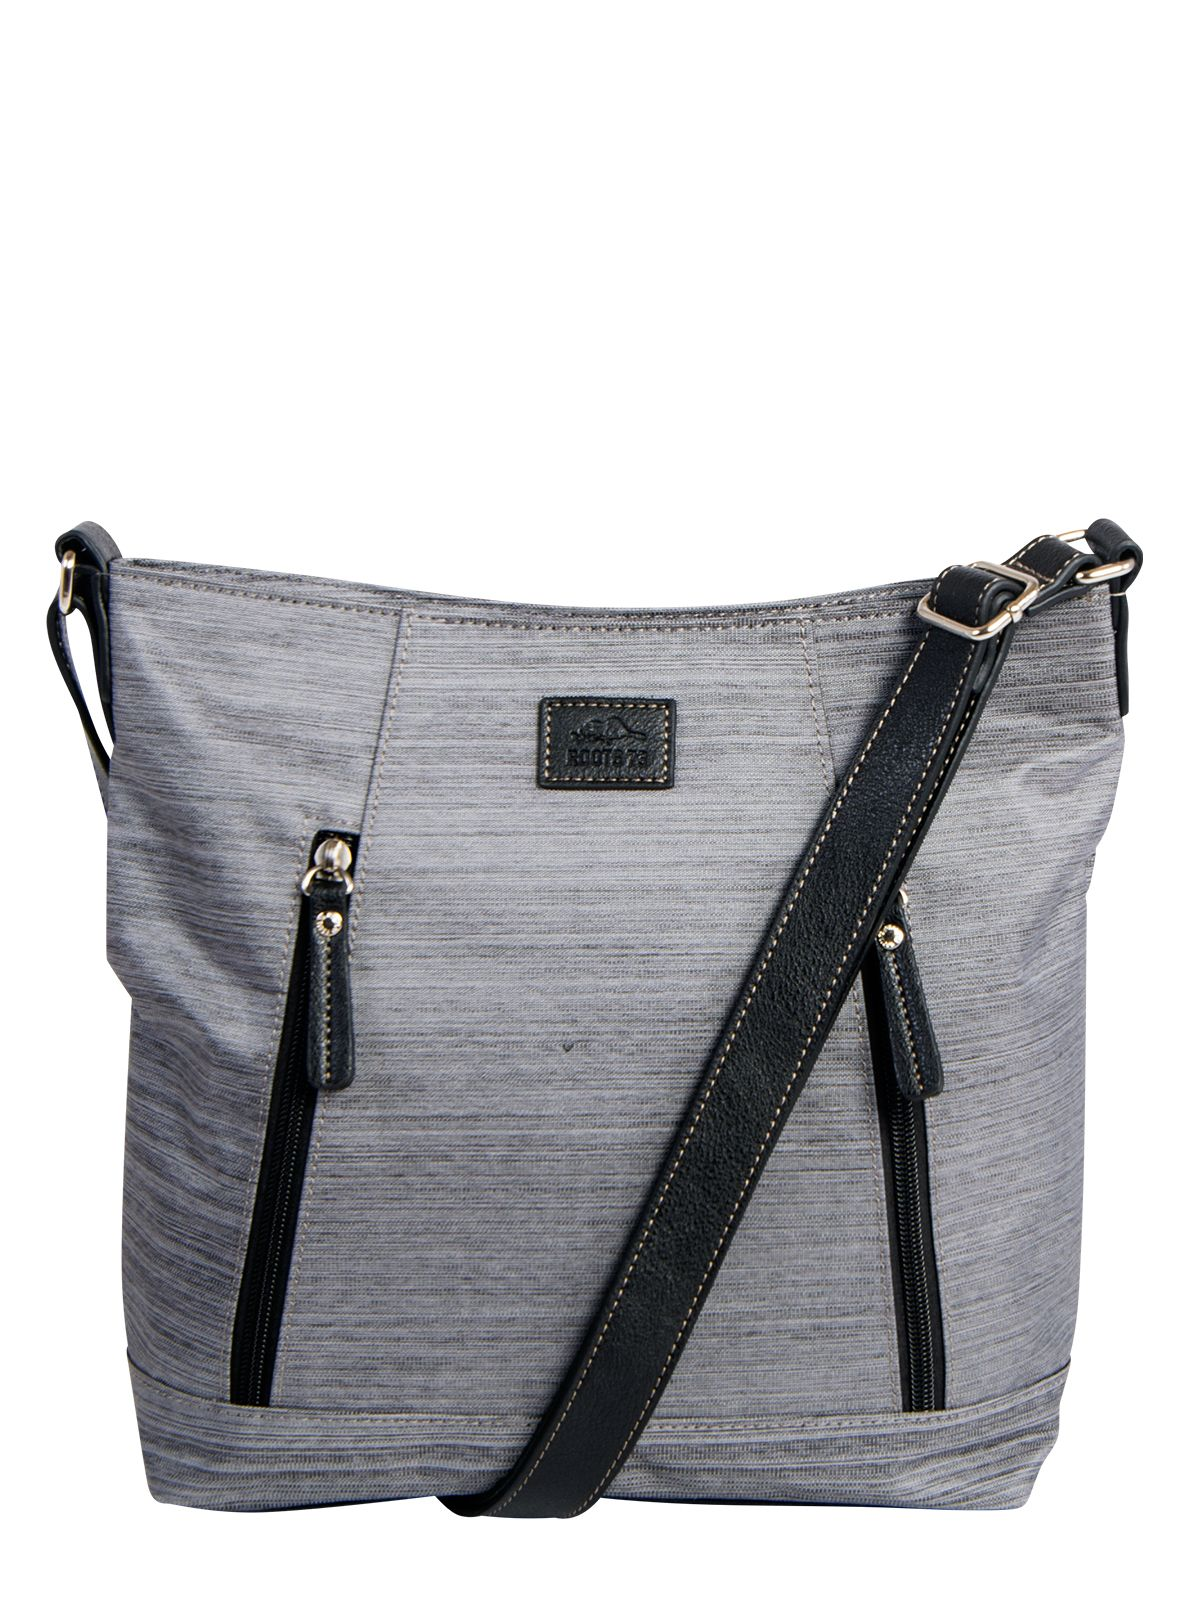 Roots 73 North South Cross Body Holiday Travel Bags